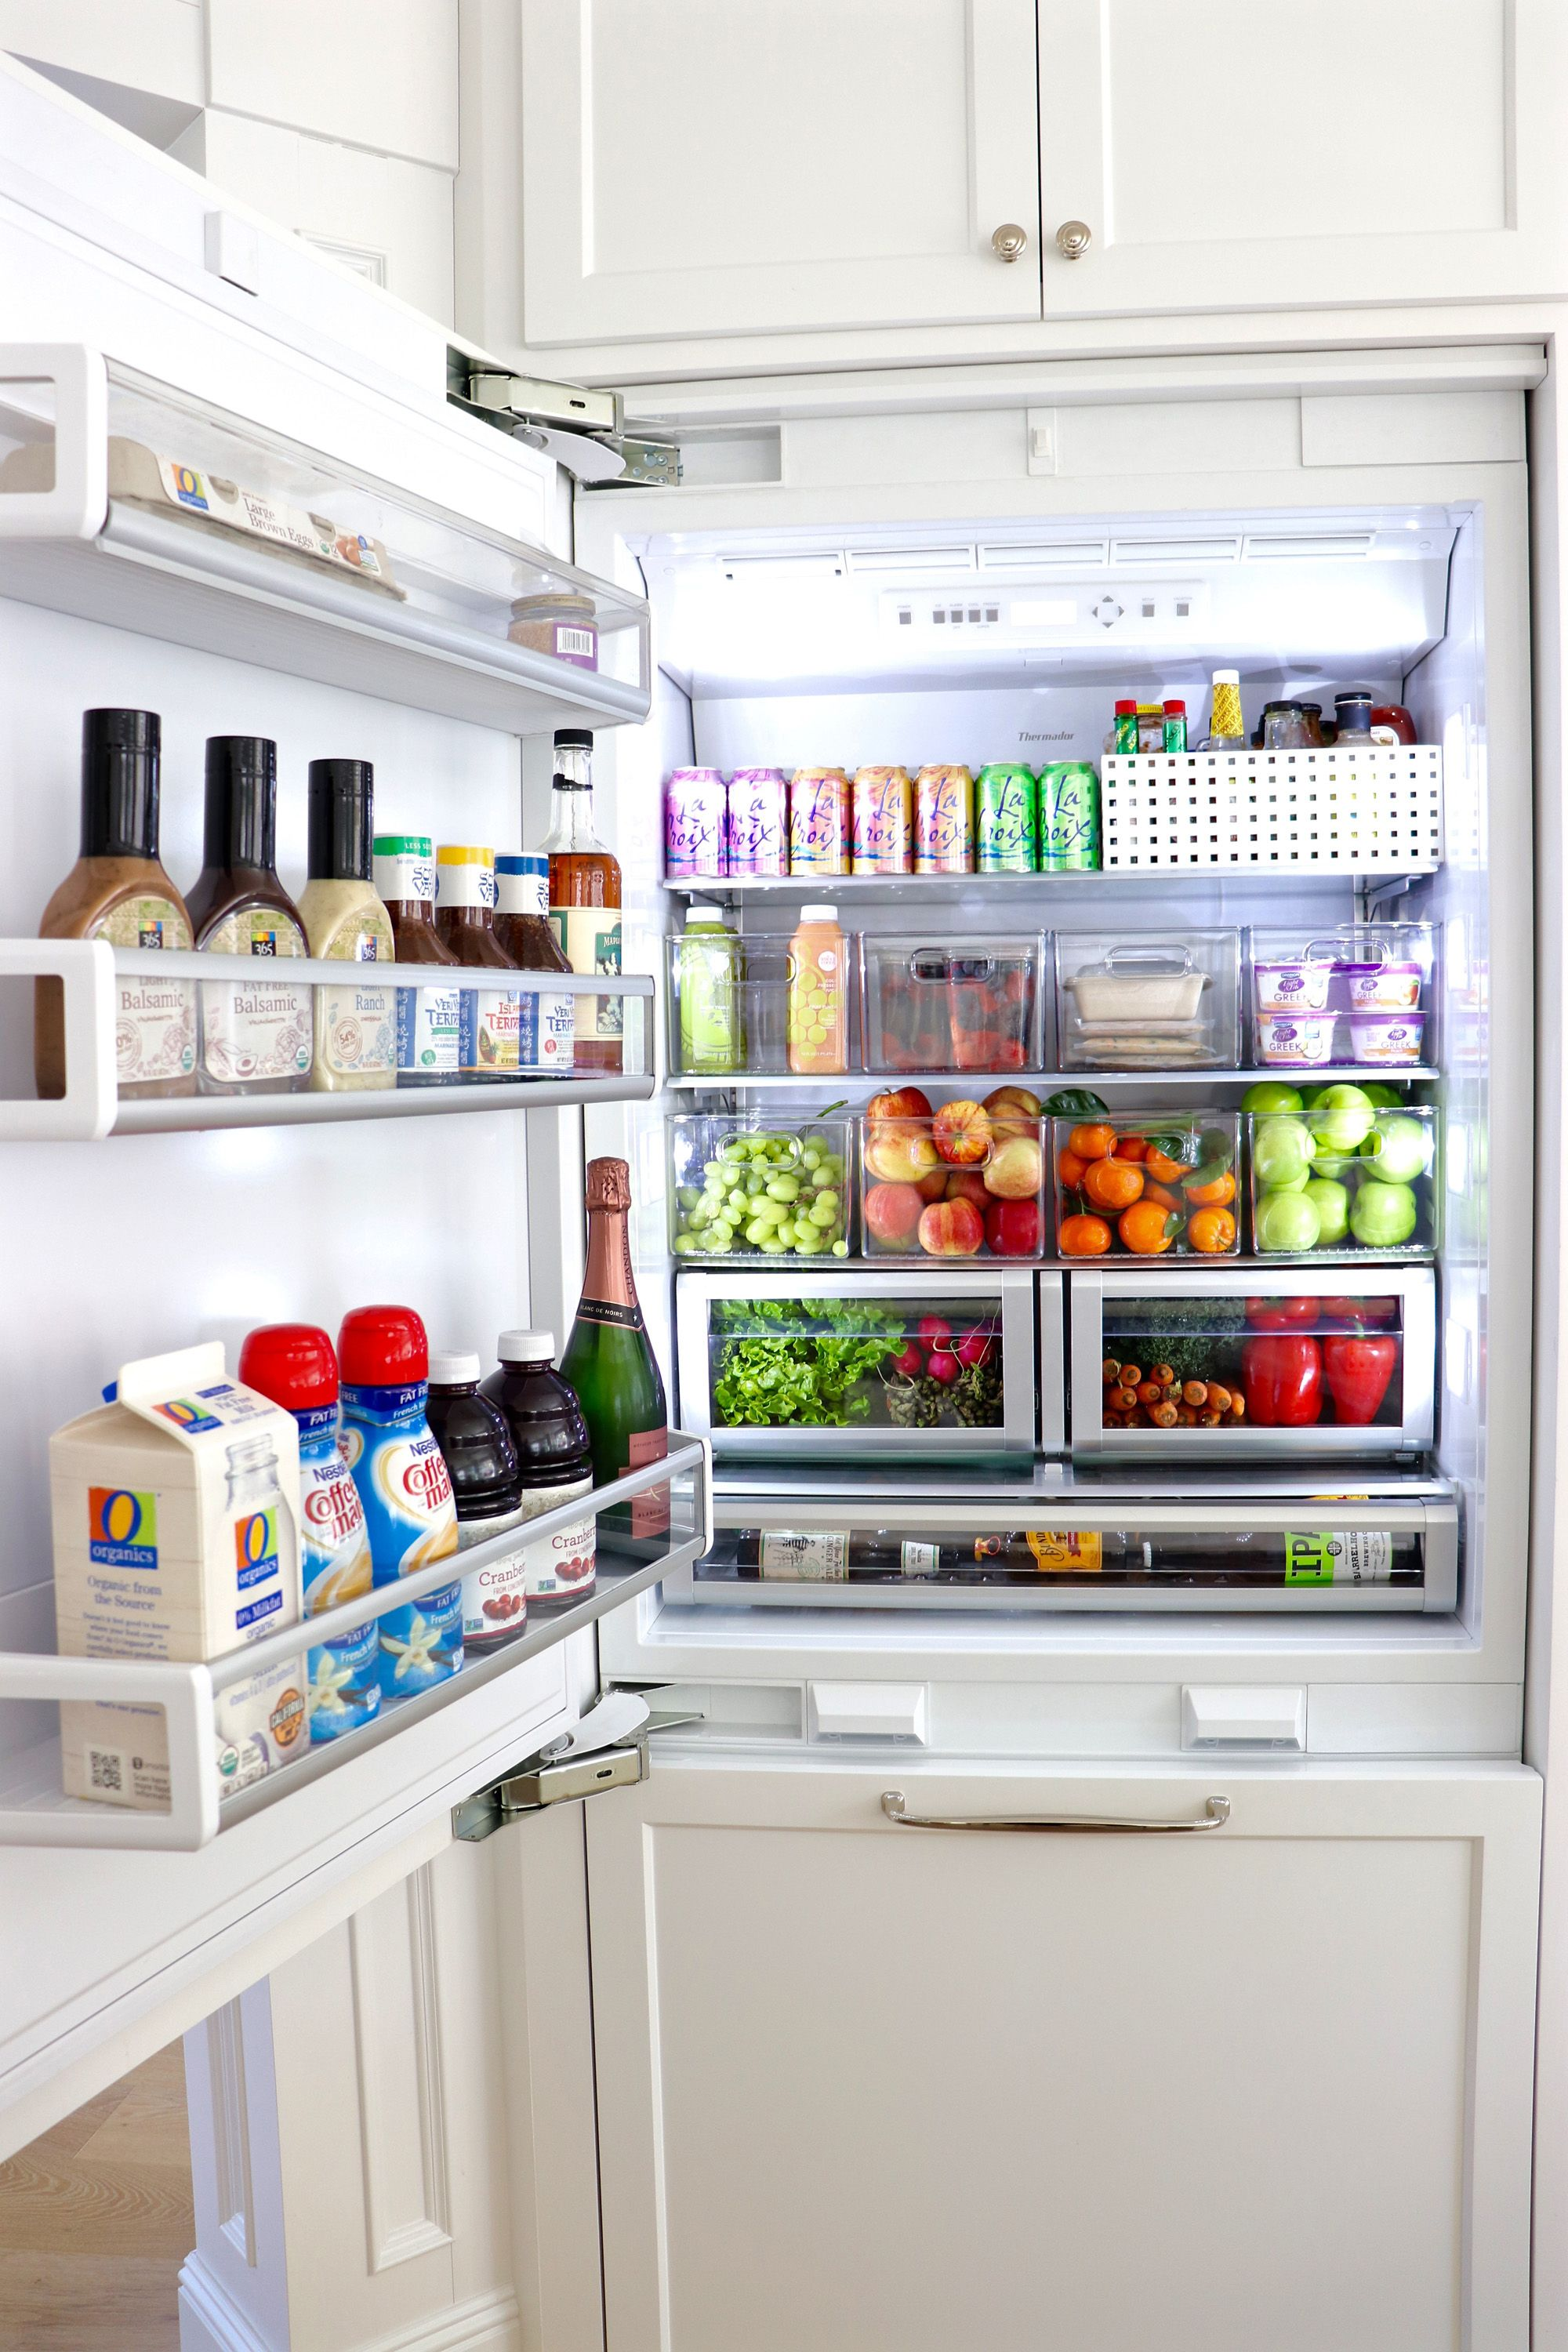 10 Tips To Organize Your Refrigerator With Inspiring Before After Photos Fridge Organization Organization Hacks Bedroom Kitchen Organization